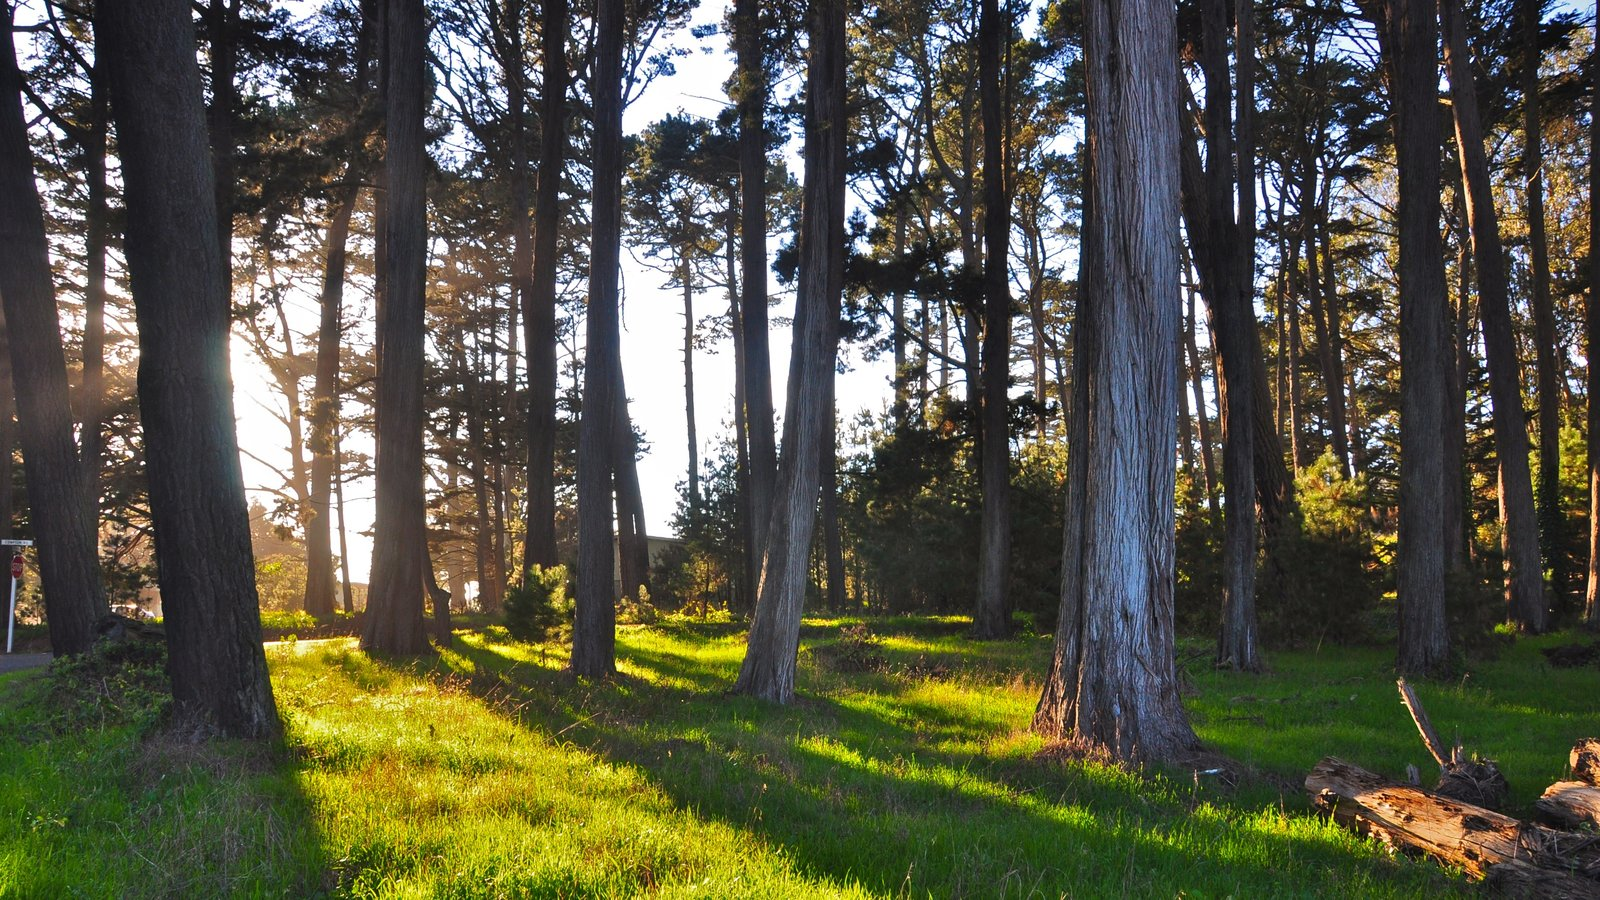 Presidio of San Francisco showing forest scenes, landscape views and a park